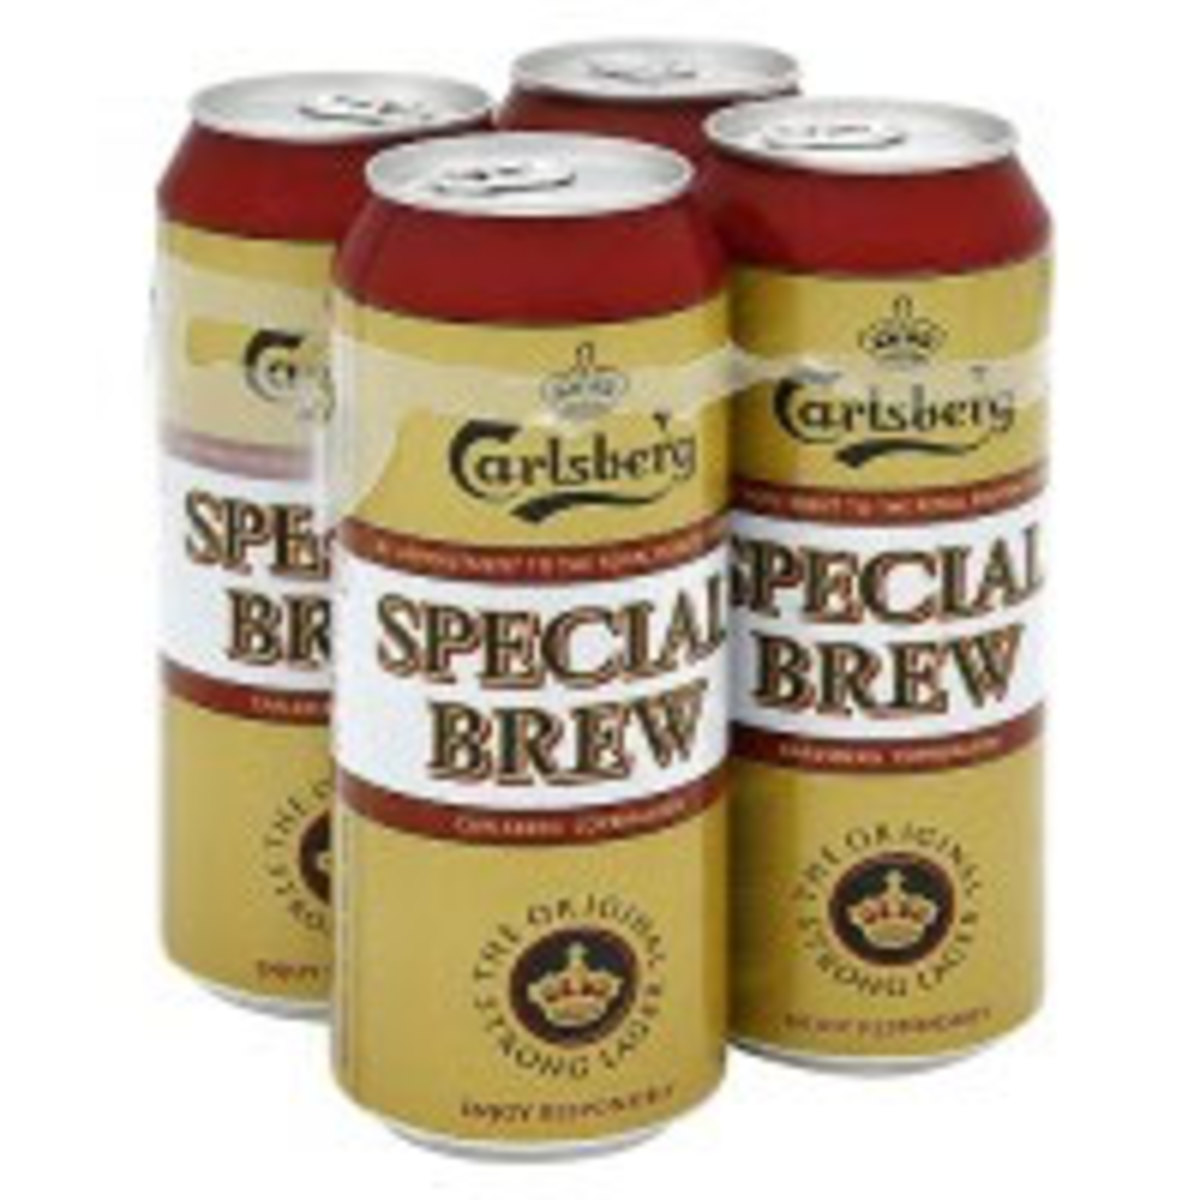 Carlsberg Special Brew 9% Lager - The Champion Lager strong in taste, rich in aroma, expensive to buy!